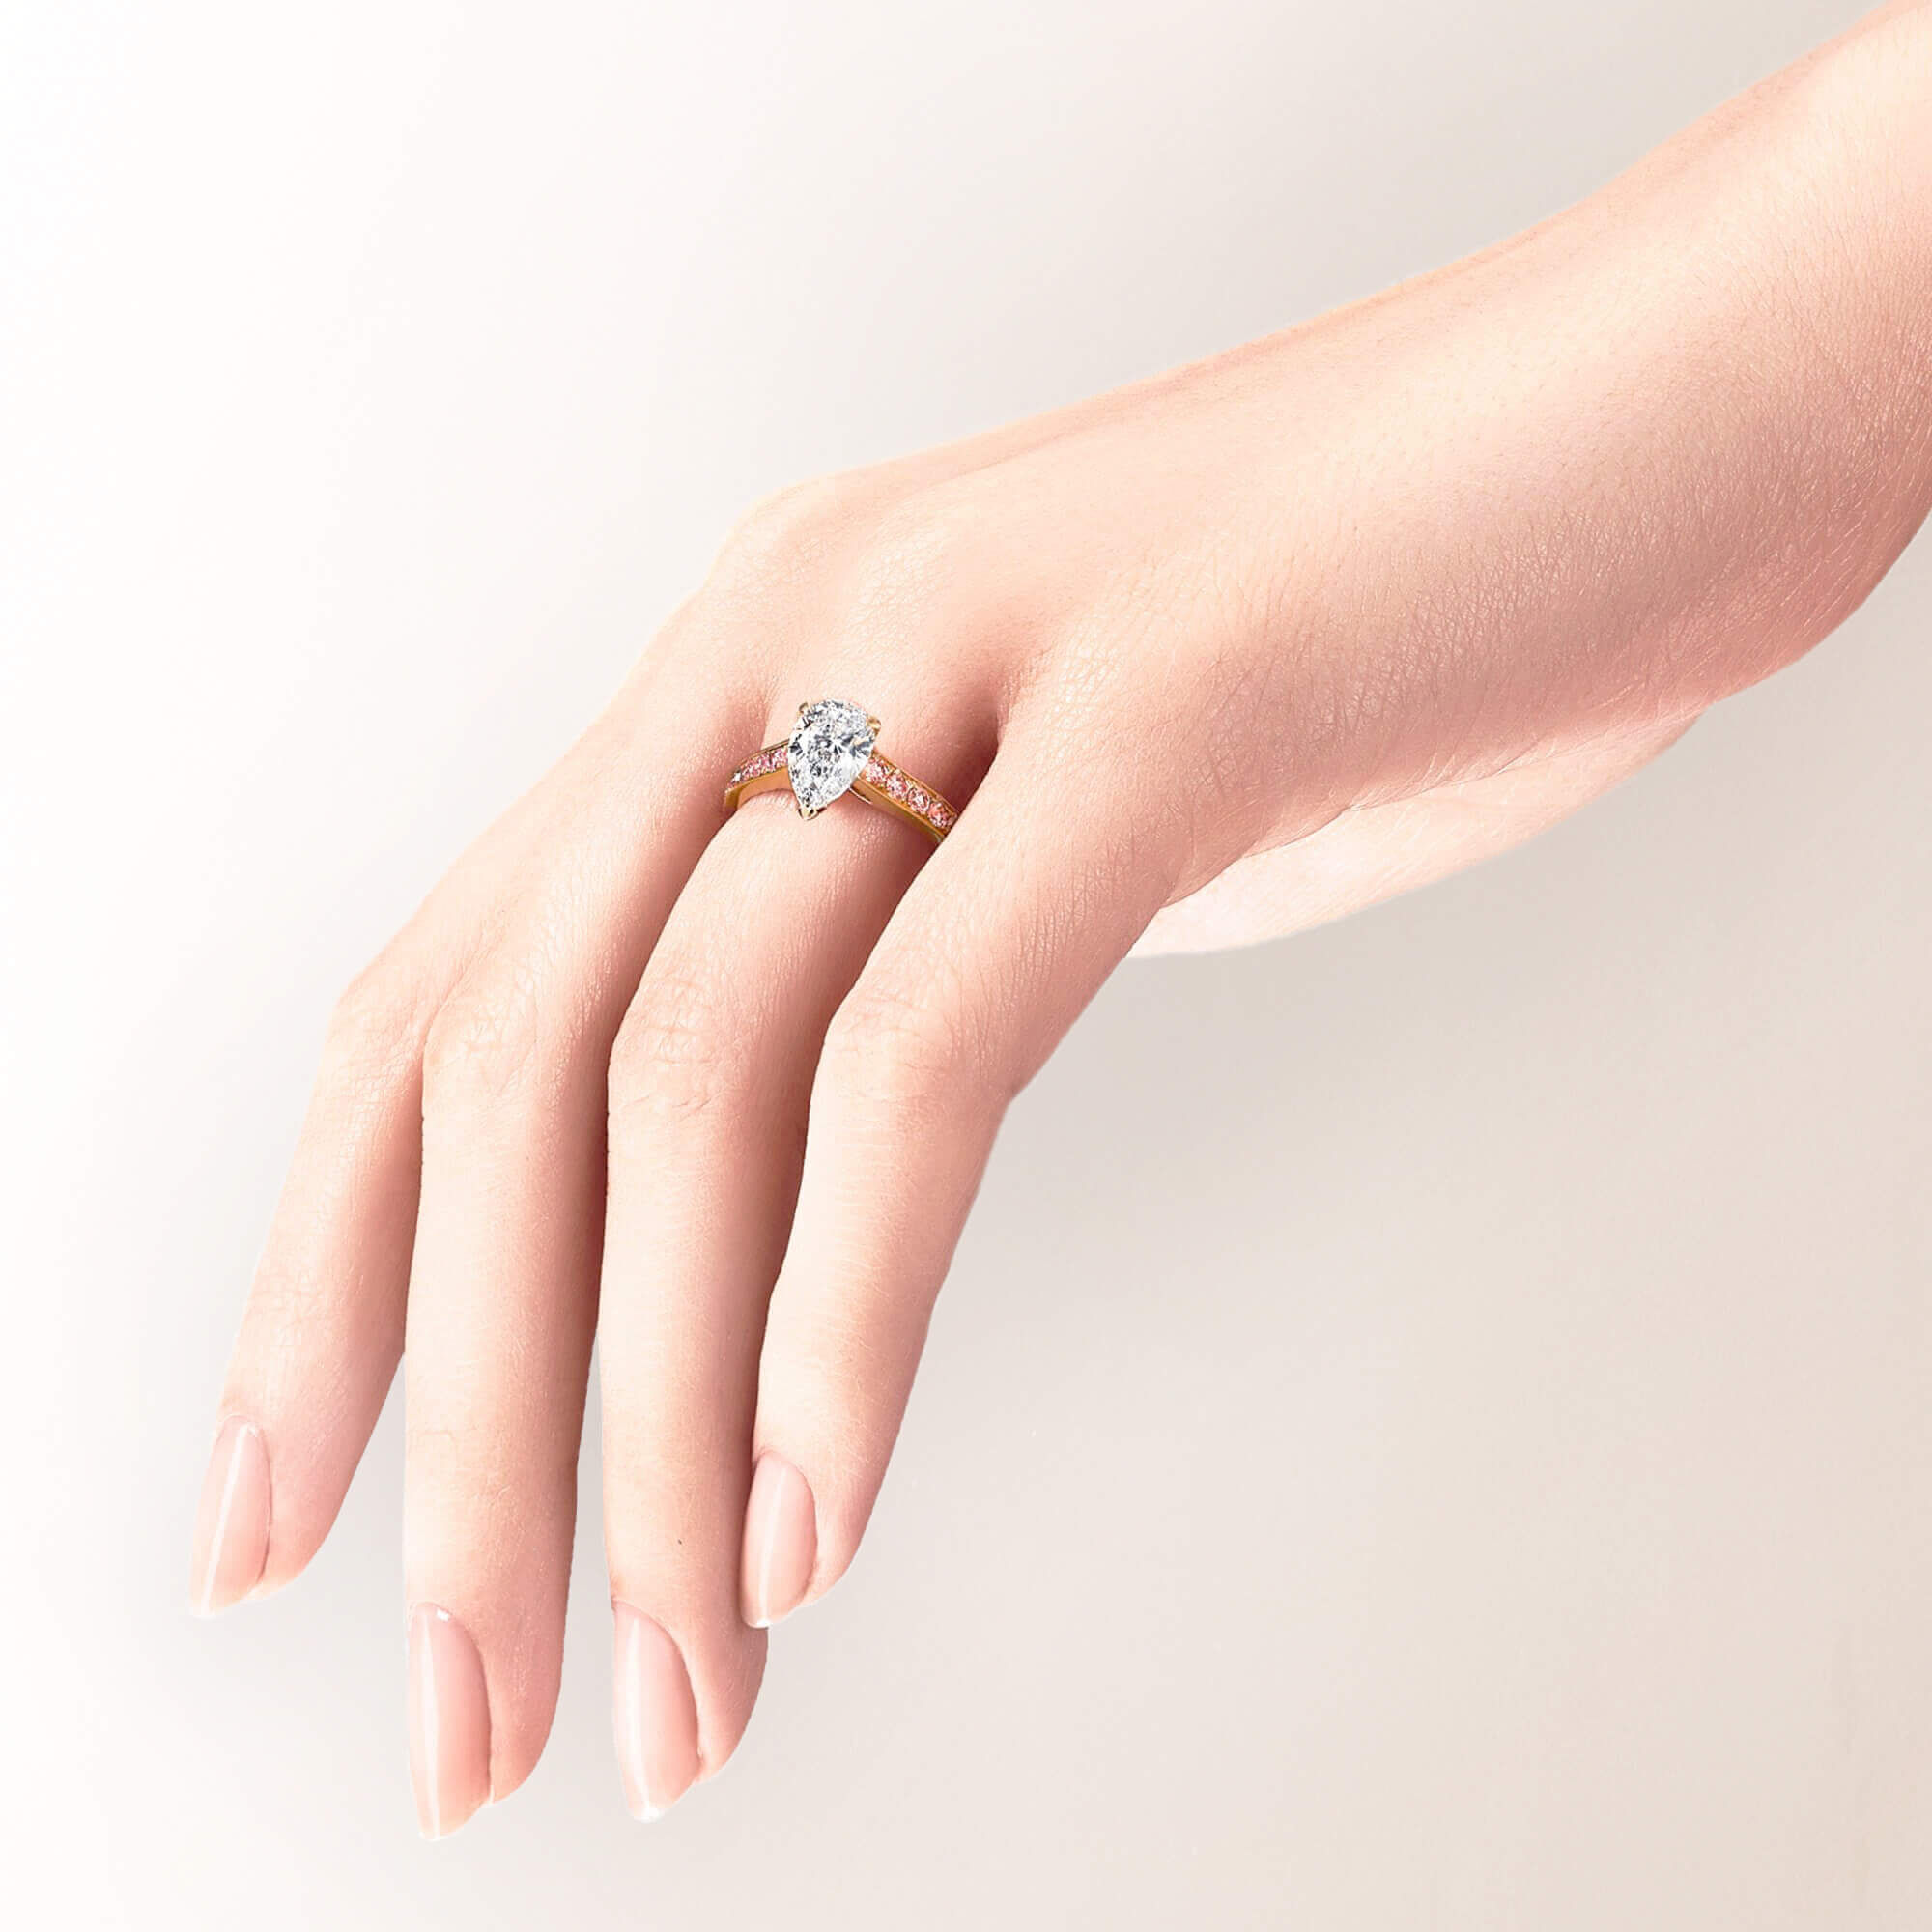 A models hand wearing a Graff pear shape diamond engagement ring